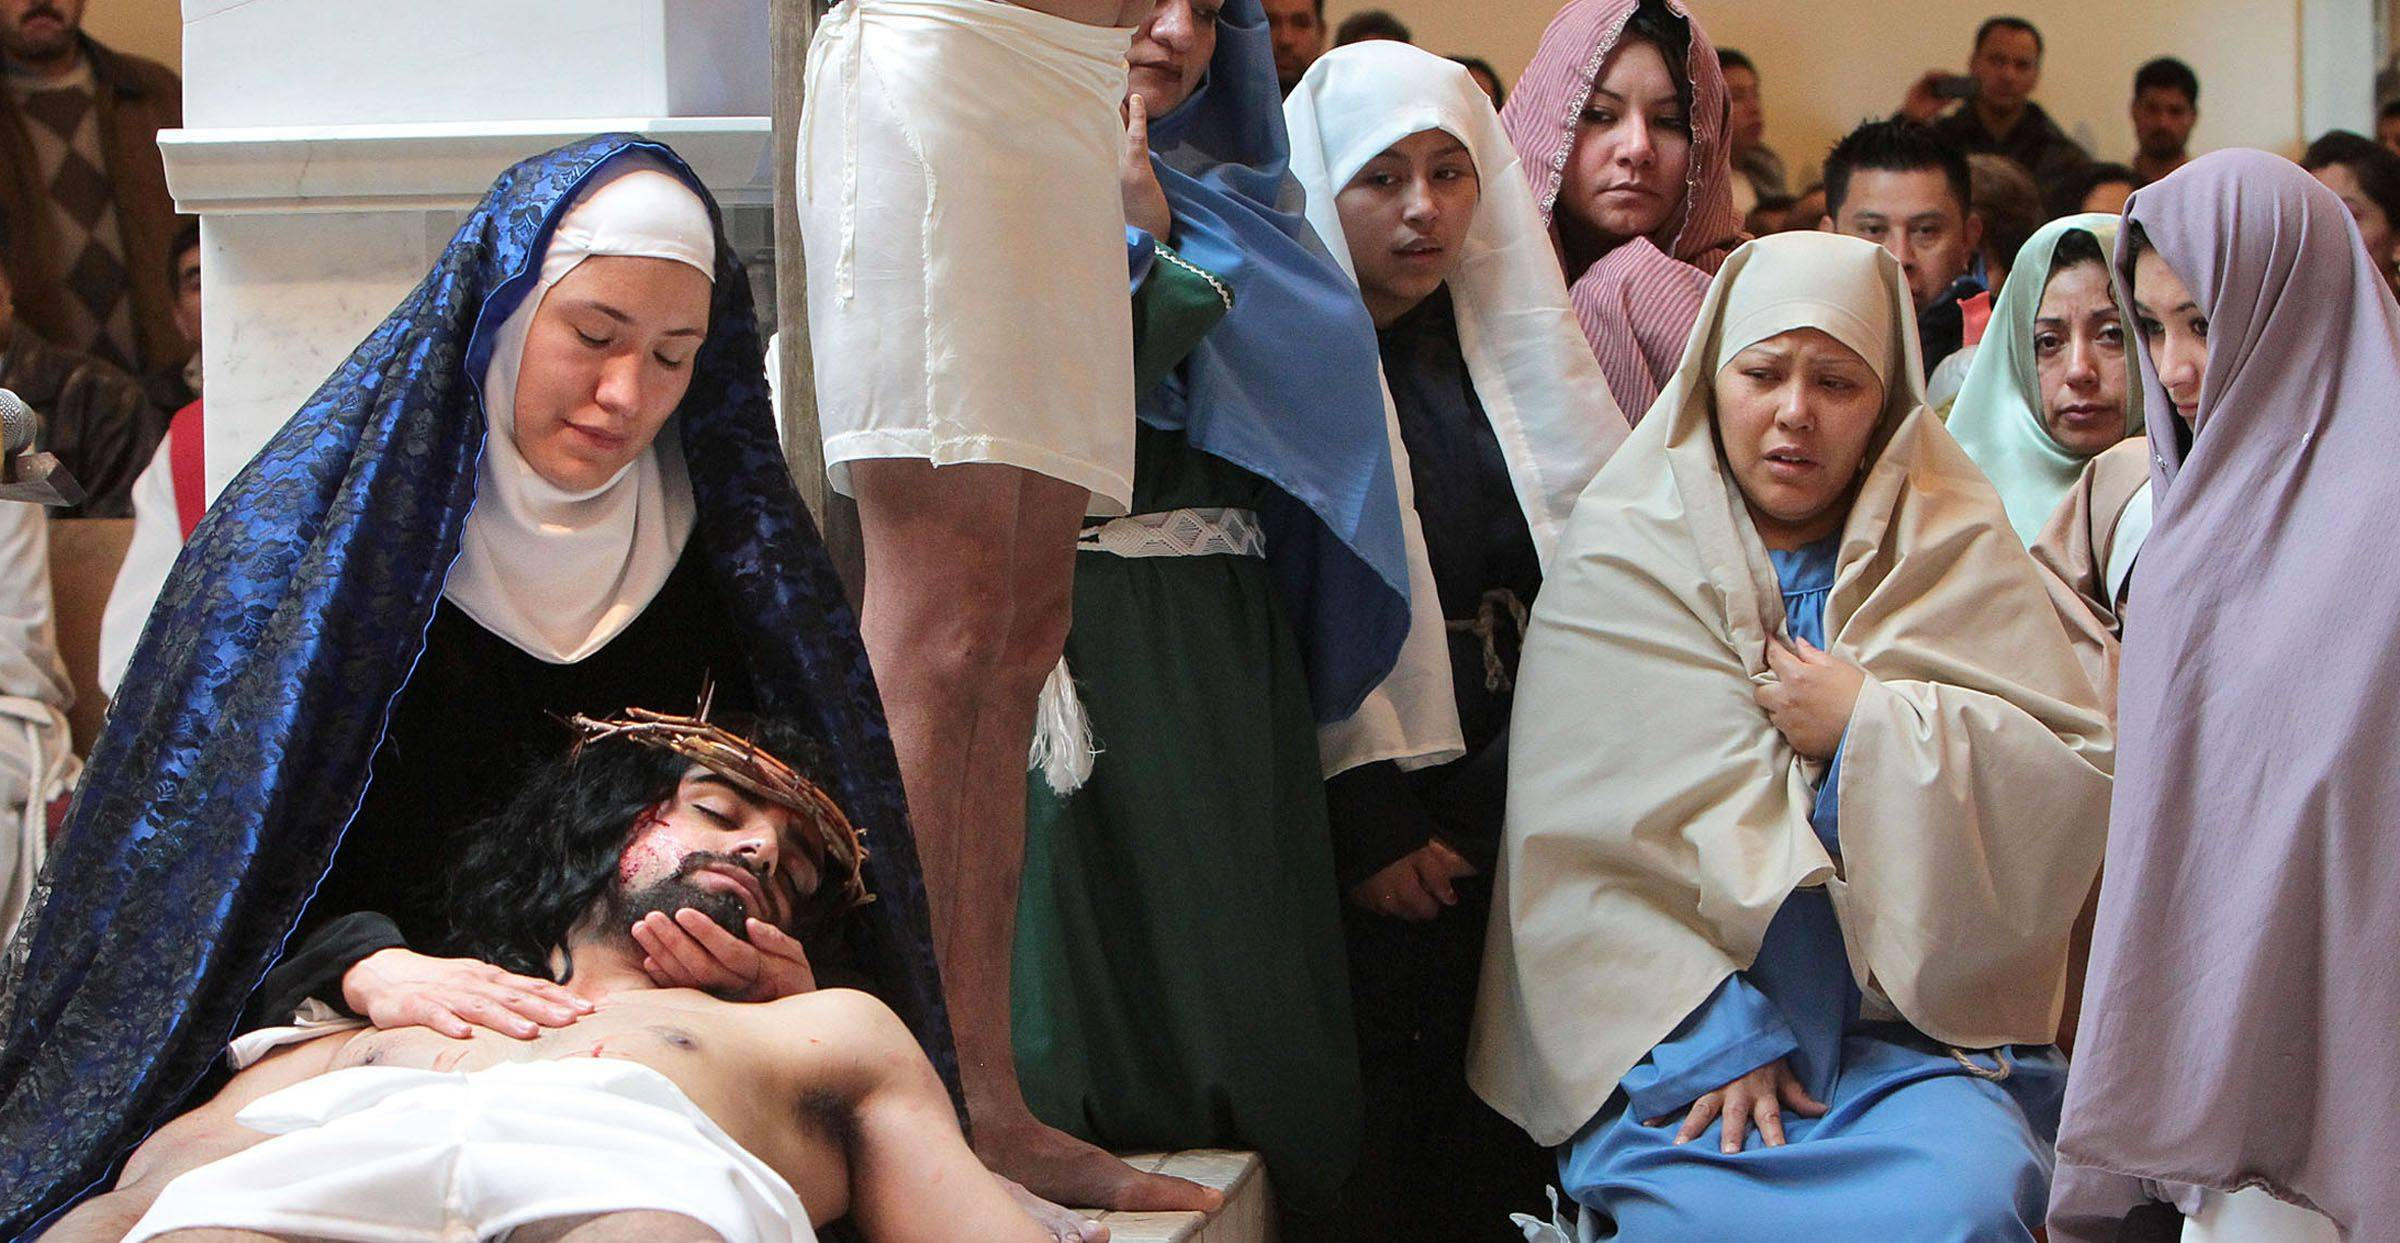 Andres Colon, 21, plays the roll of Jesus and 30-year-old Elizabeth Rivera plays the roll of Mary, both of Waukegan, as the parishioners of Most Blessed Trinity Parish in Waukegan held a Living Stations of the Cross for Good Friday.